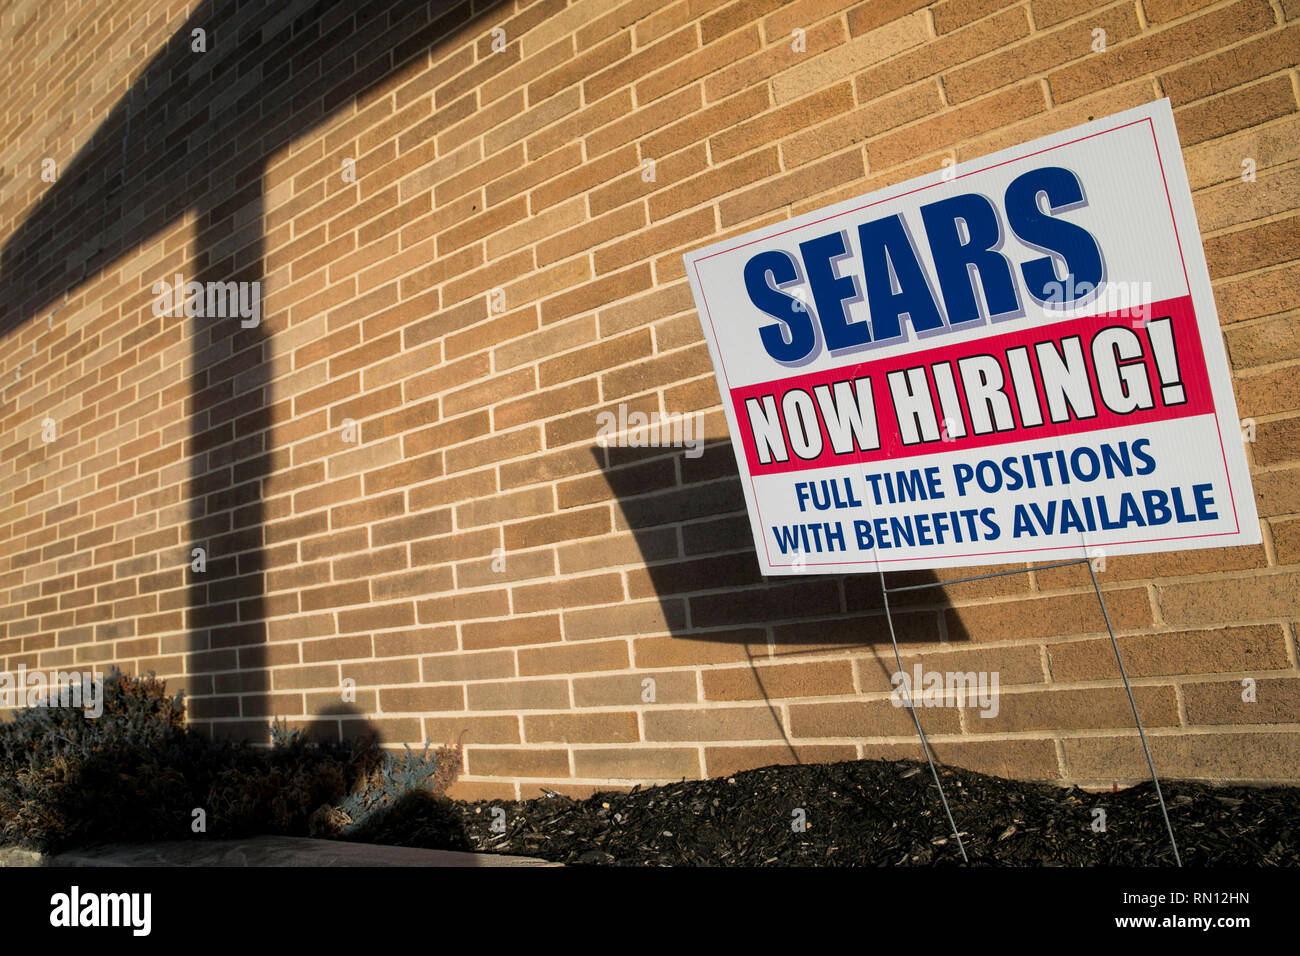 A 'Now Hiring' sign outside of a Sears retail store location in Harrisburg, Pennsylvania on February 9, 2019. - Stock Image